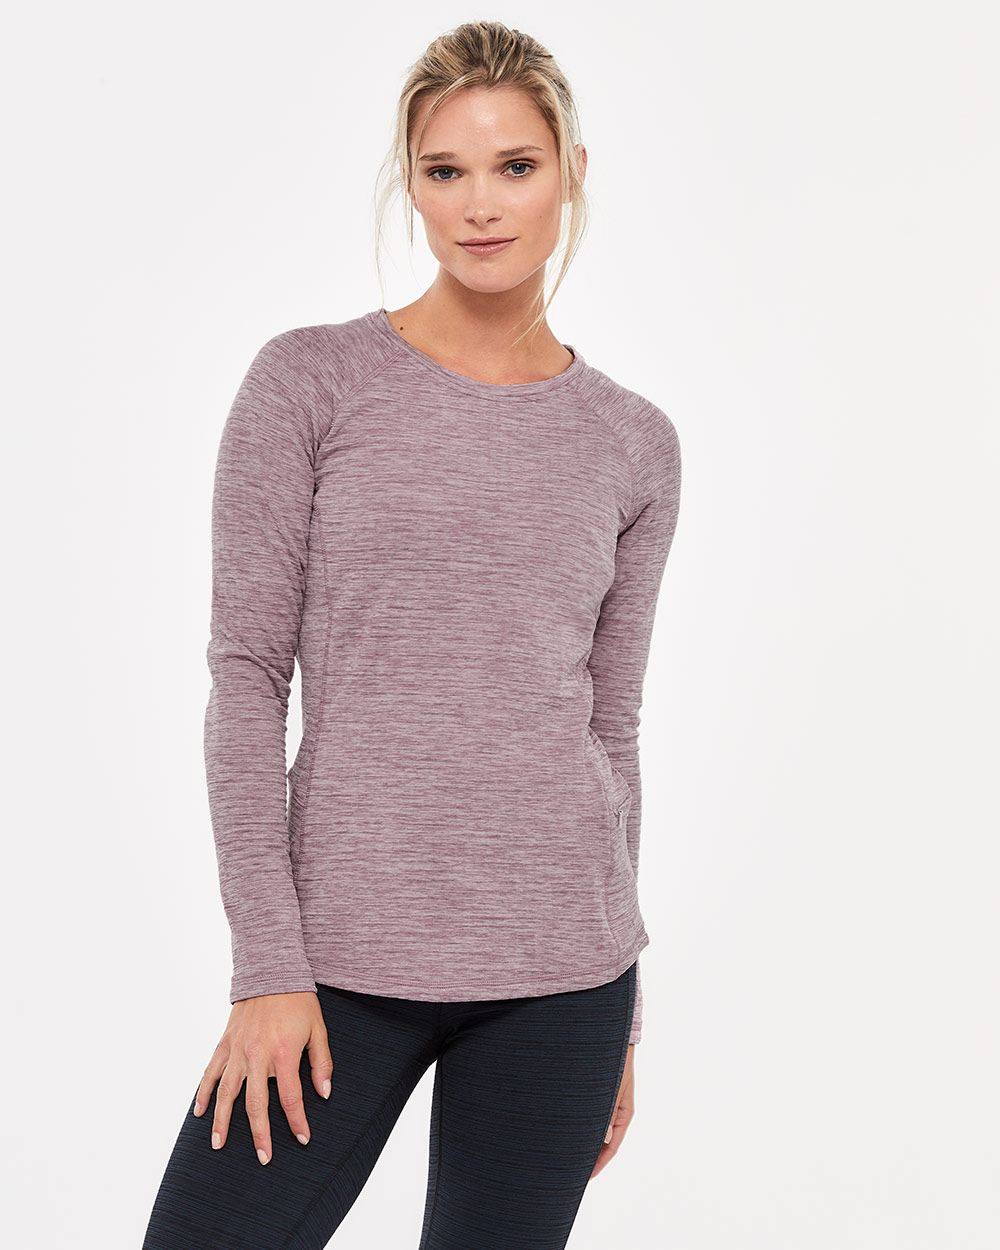 Raglan Sleeve Top with pocket